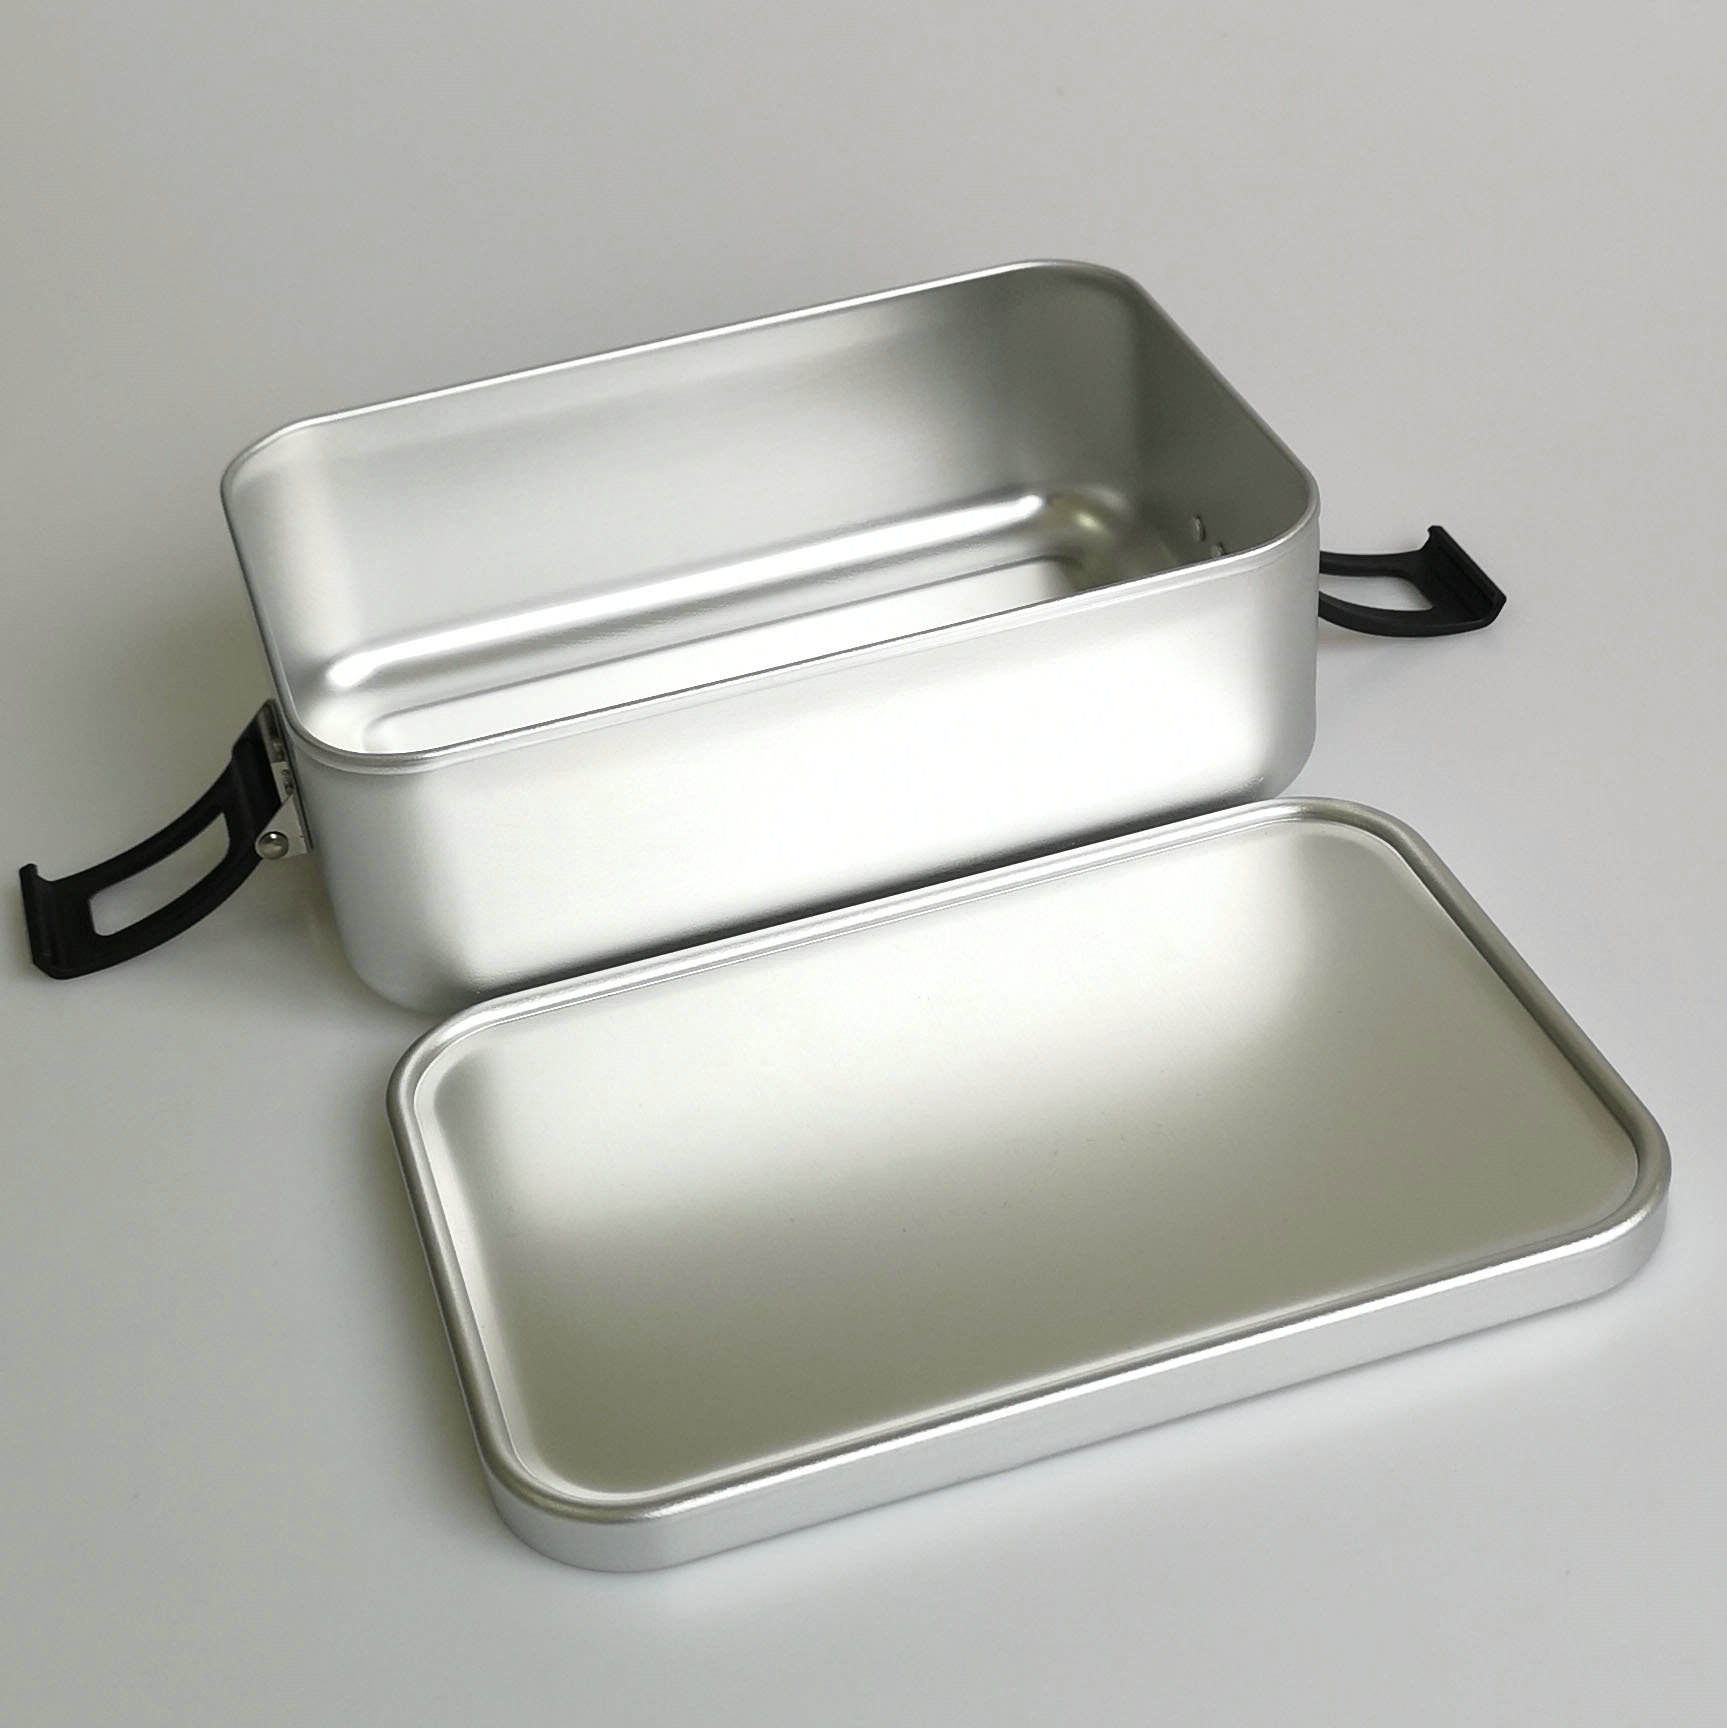 Classic [ Lunch Box Metal ] Metal Lunch Box HOT SELL New Products 2019 1000ml Rectangle Lockable Leakproof Aluminum High Quality School Lunch Box Metal Bento Box